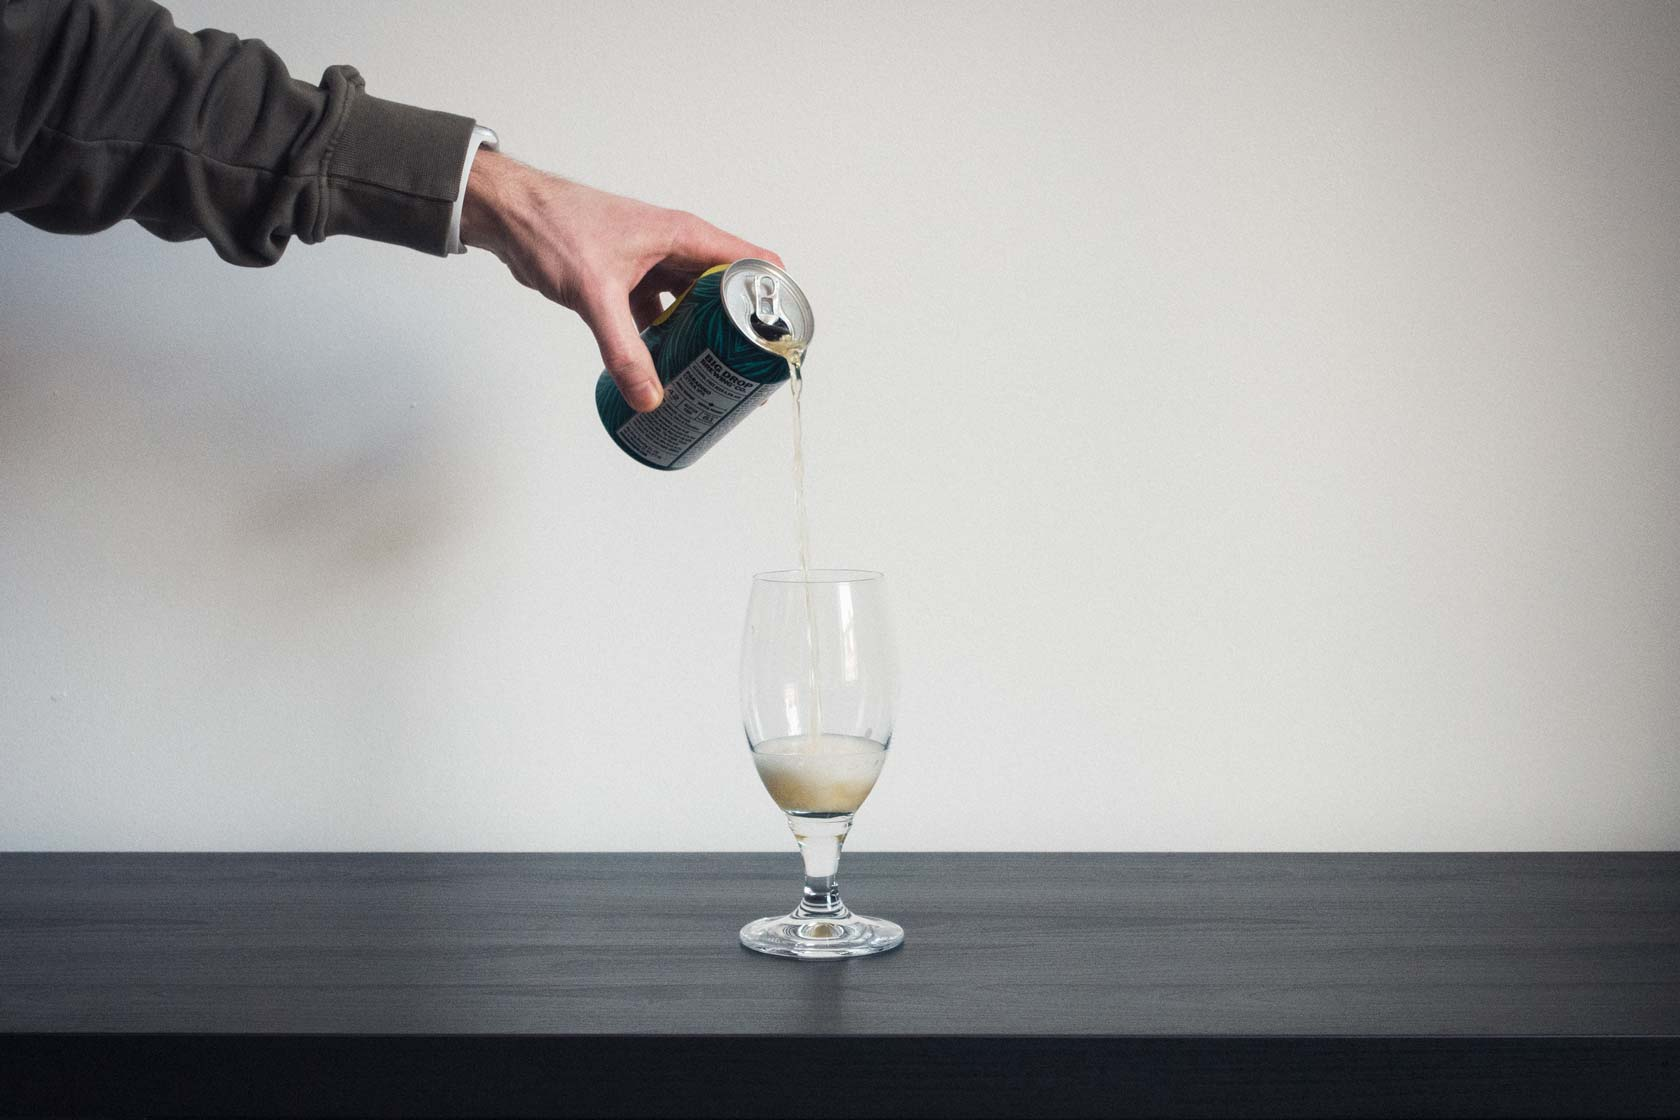 beer being poured into glass on minimal desk table